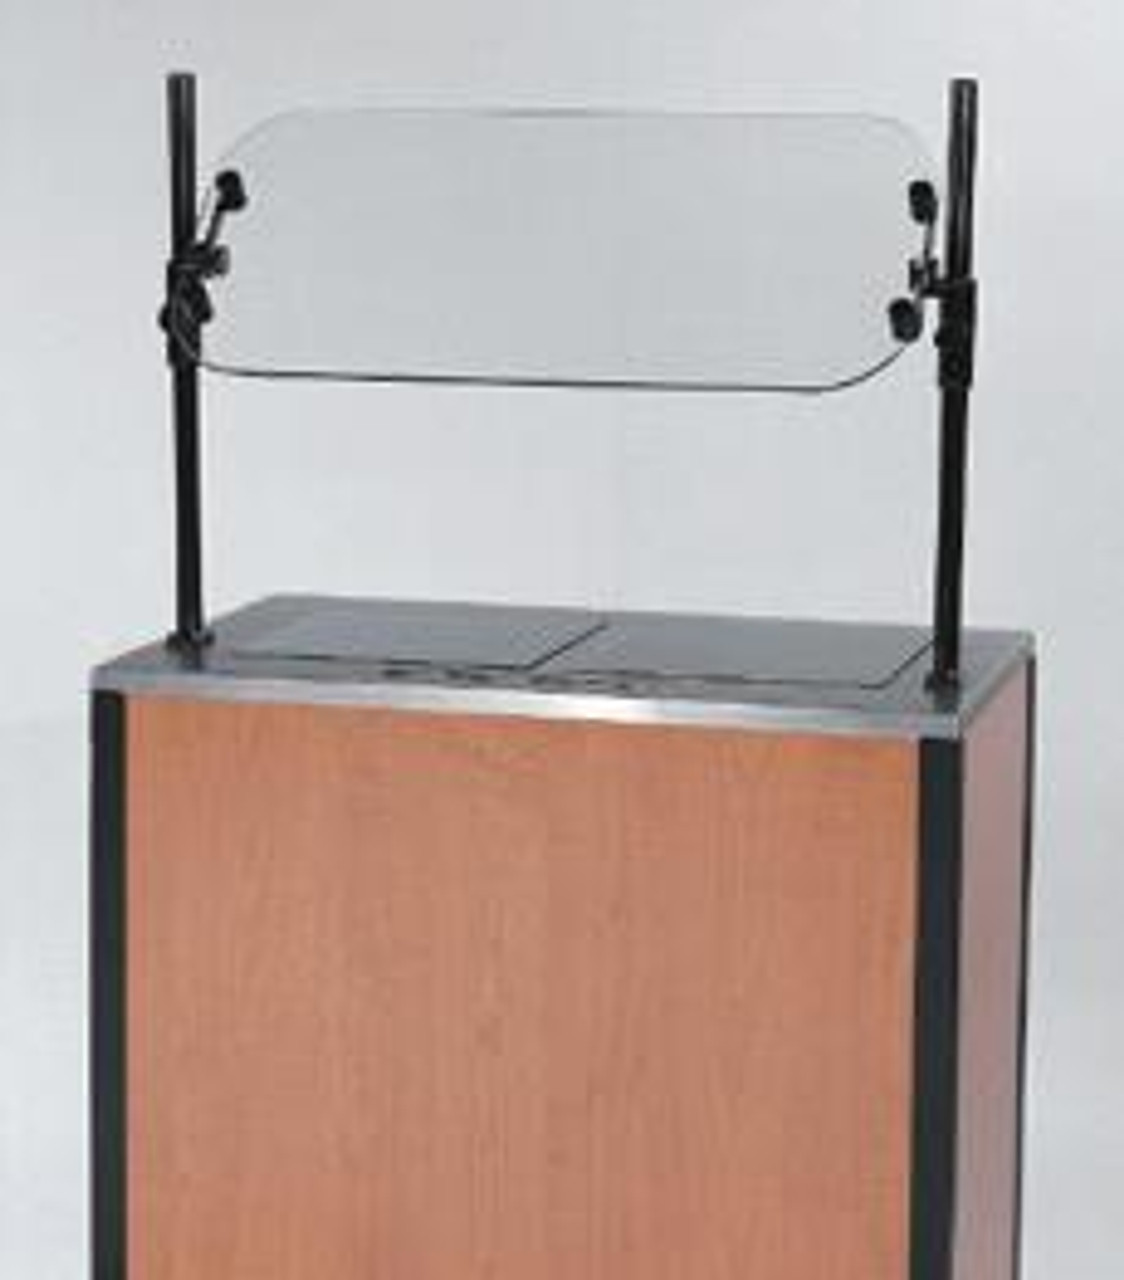 MODEL 2075 Creation Express™ Station Mobile Cooking Cart. Shown with optional Breath Guard